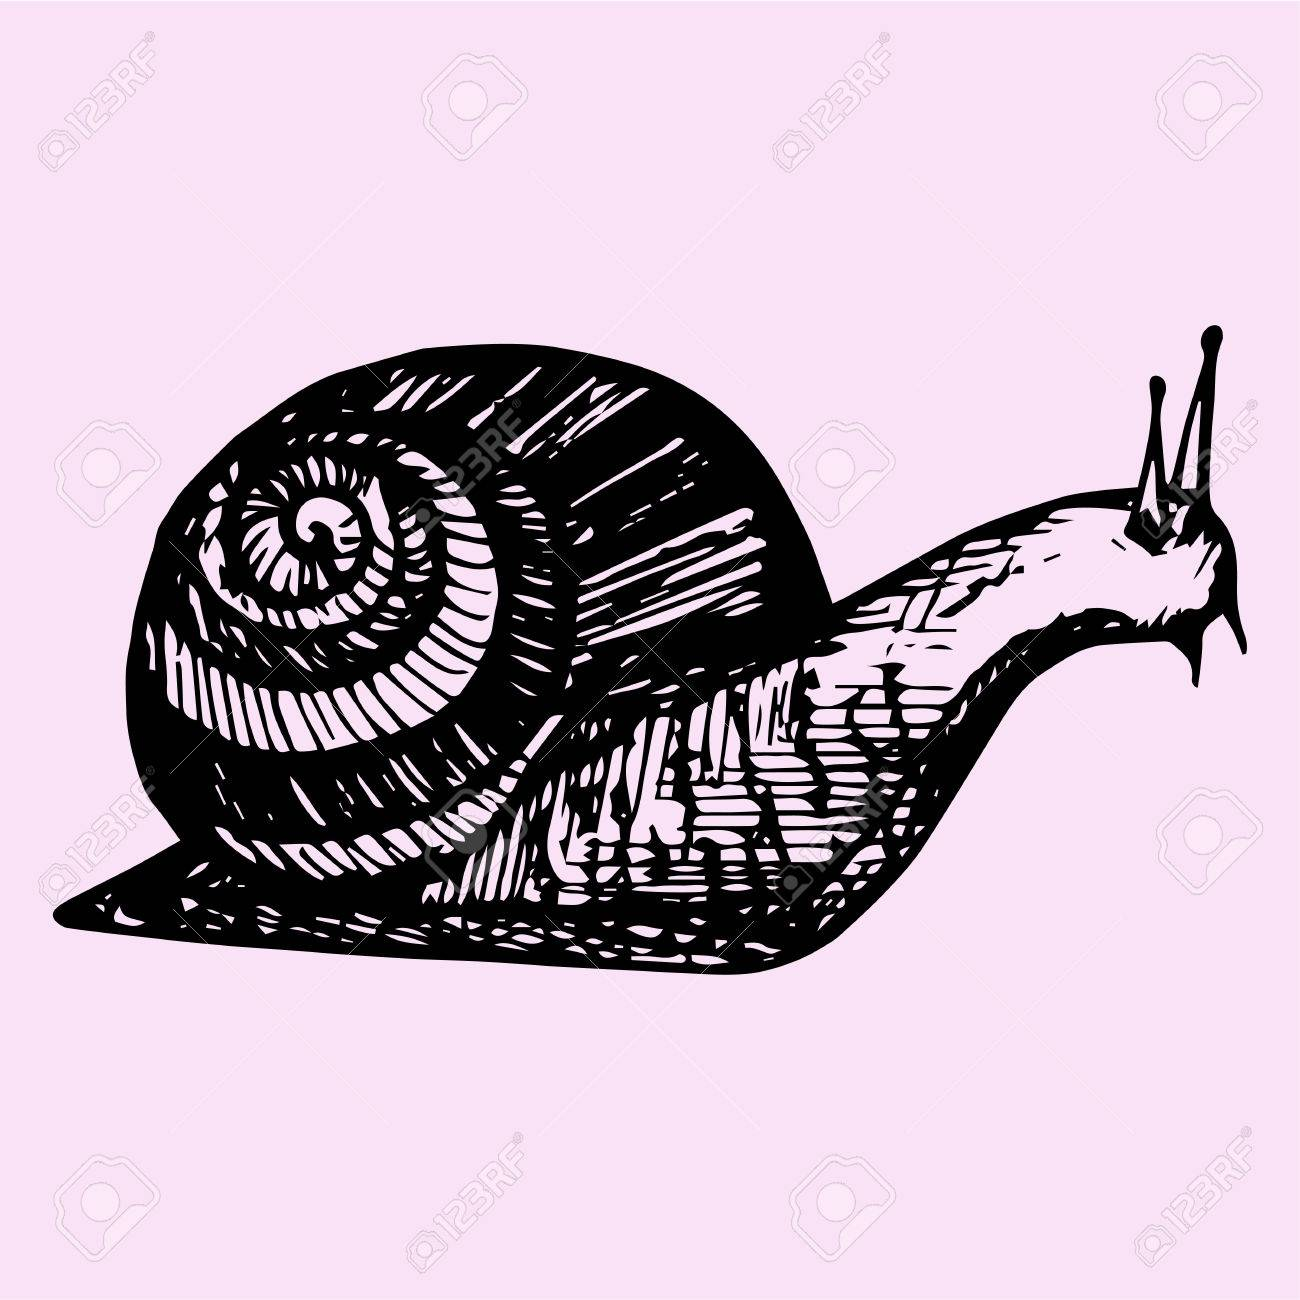 1300x1300 Snail, Hand Drawn, Doodle Style, Sketch Illustration Royalty Free